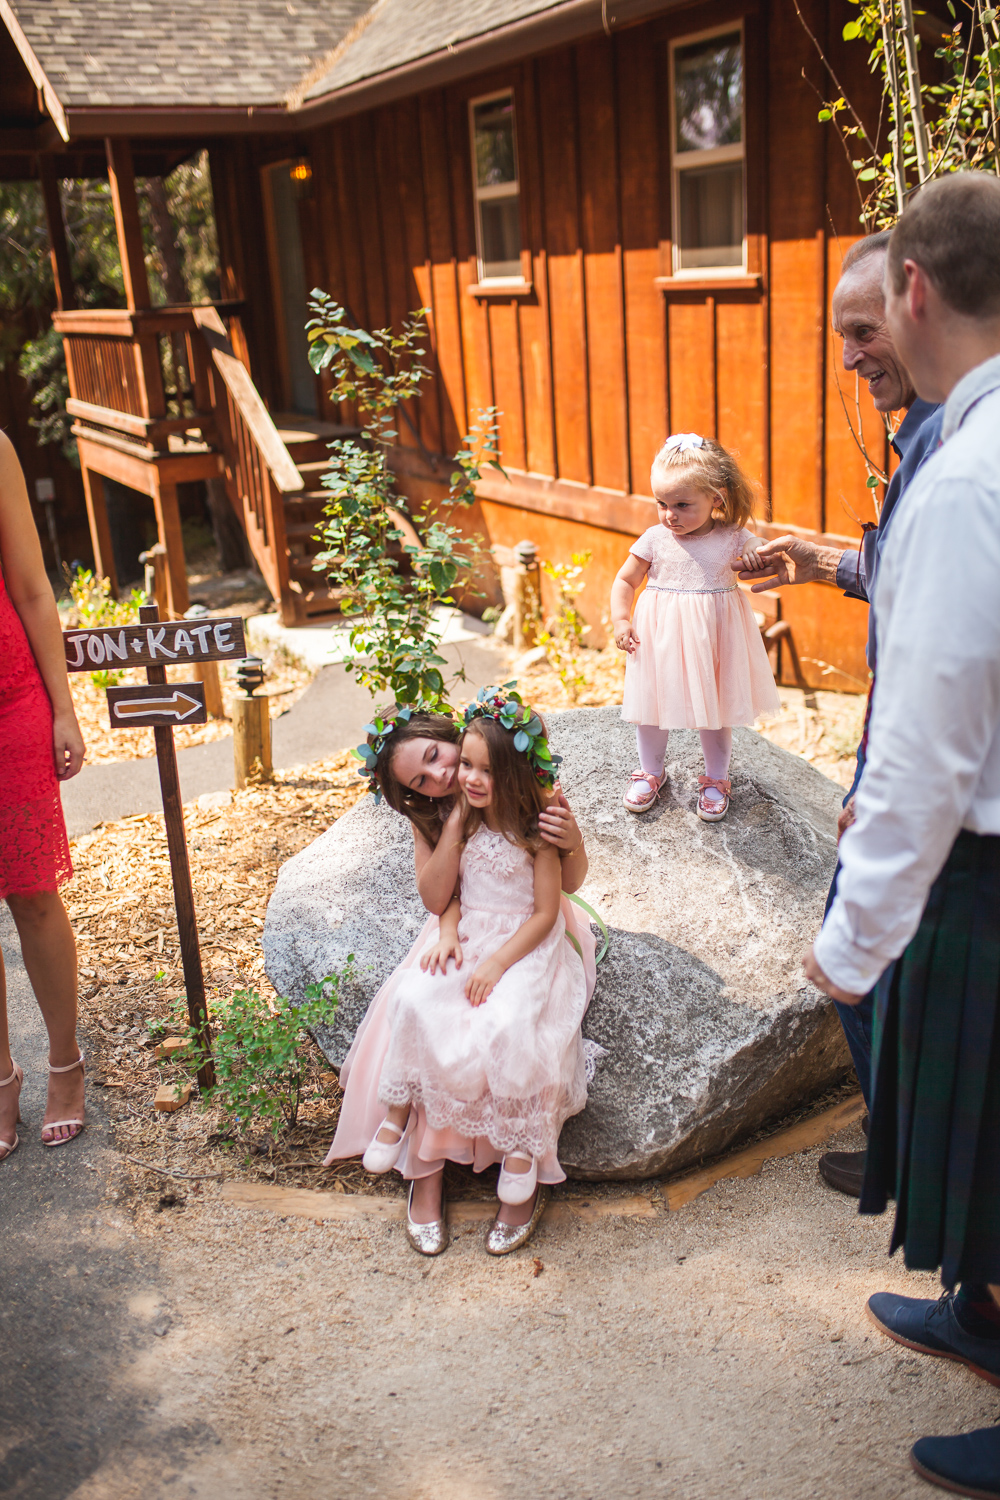 yosemite lodge wedding.jpg